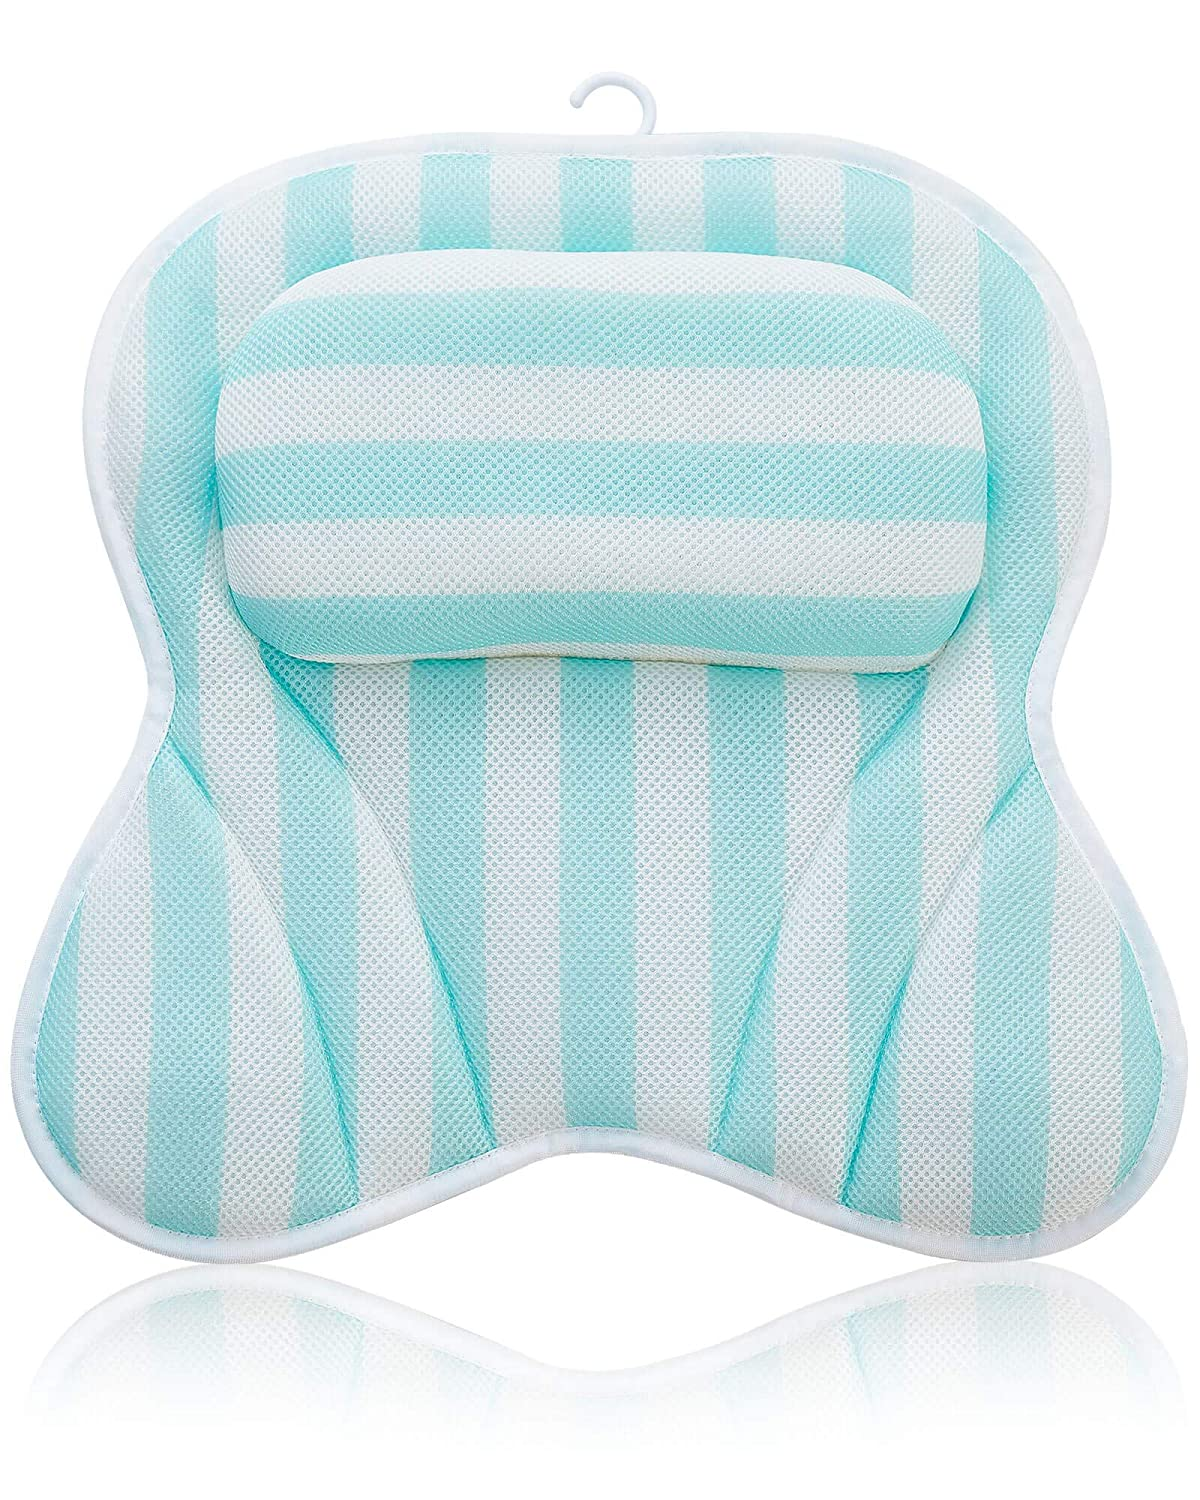 Bathtub Recommended Bath pillow Pillow tub New arrival mat SPA for